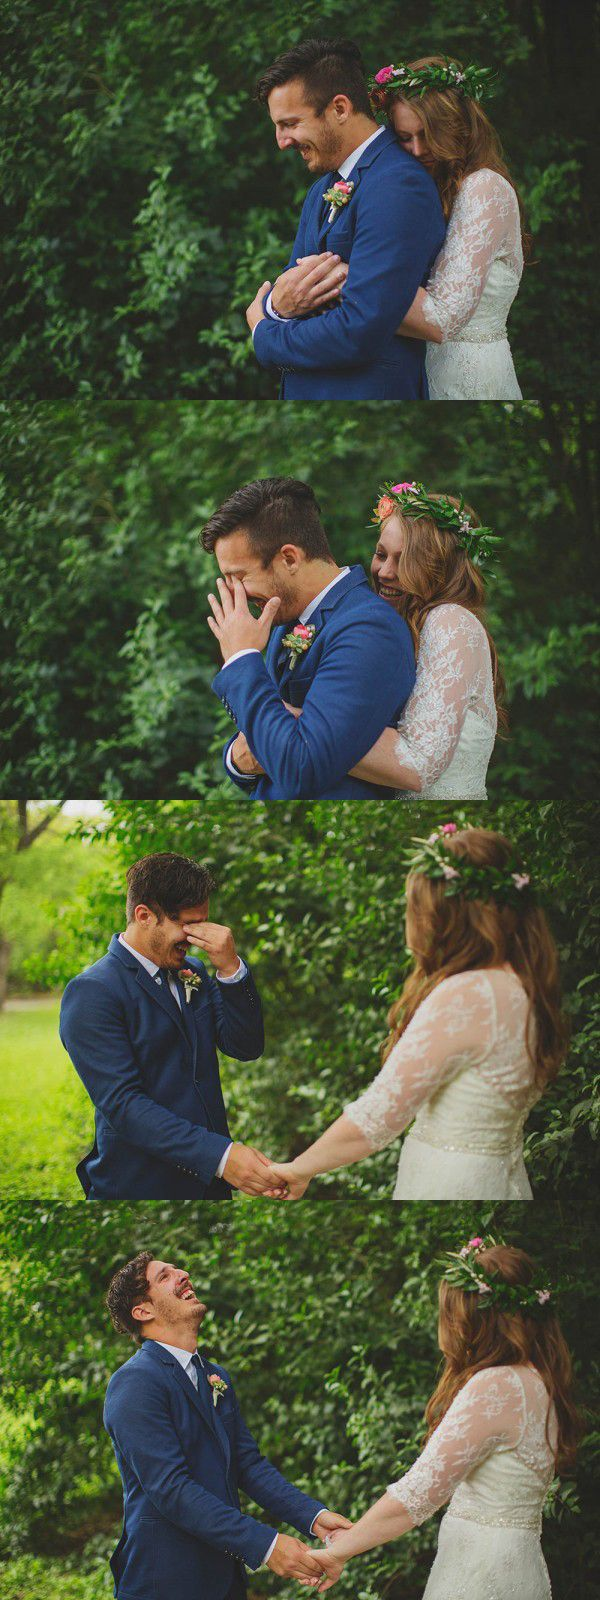 You could say that we're big on moments here at Junebug Weddings, and there's no moment that gets us worked up like an emotional first look!